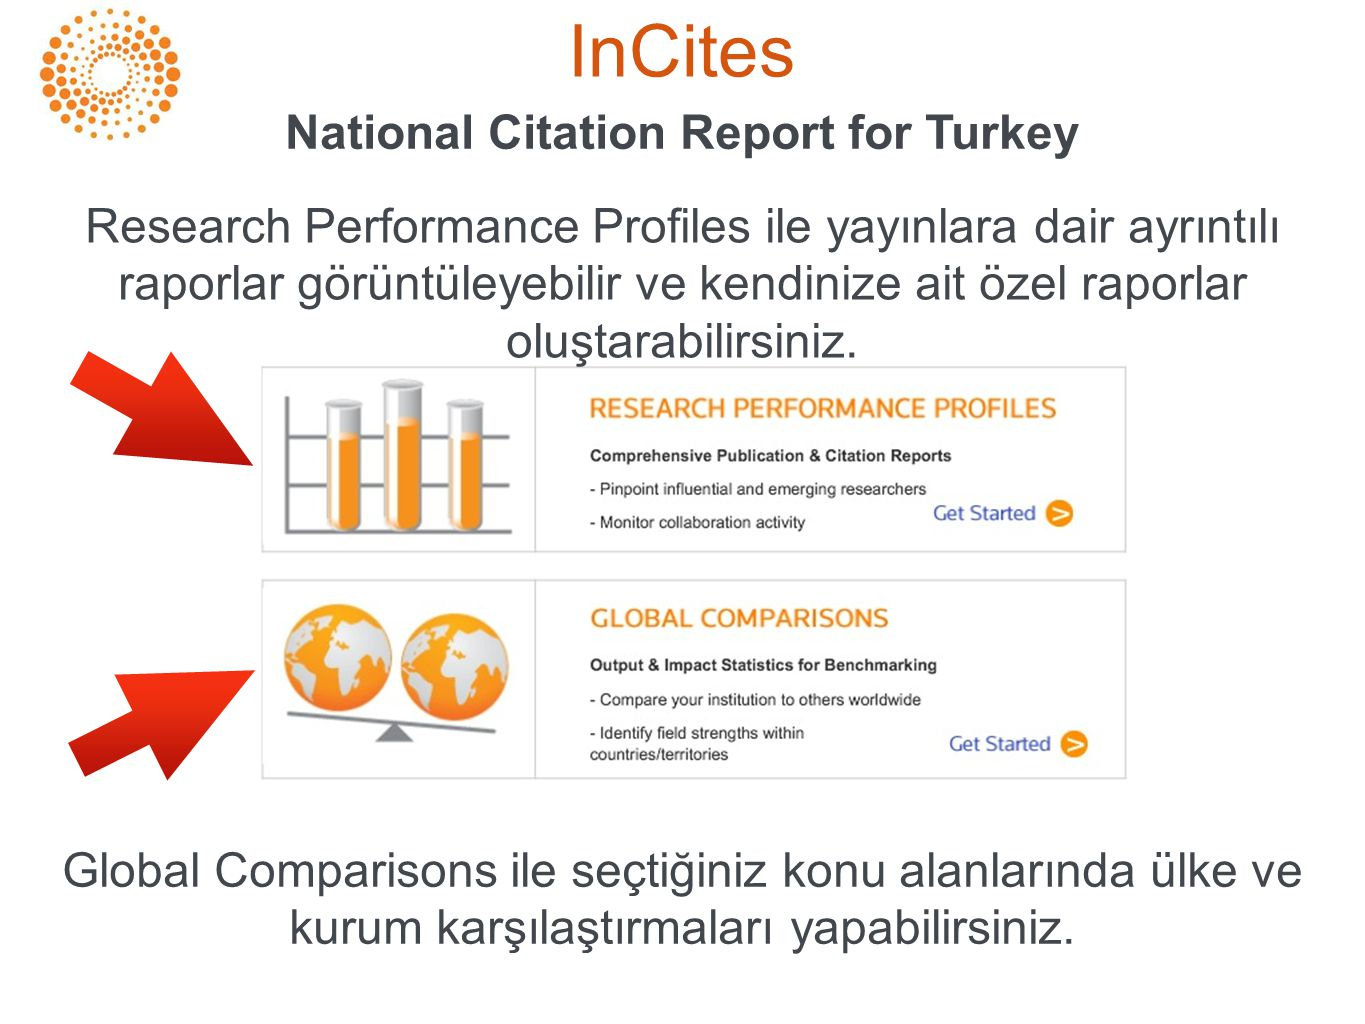 InCites National Citation Report for Turkey Research Performance Profiles ile yayınlara dair ayrıntılı raporlar görüntüleyebilir ve kendinize ait özel raporlar oluştarabilirsiniz.